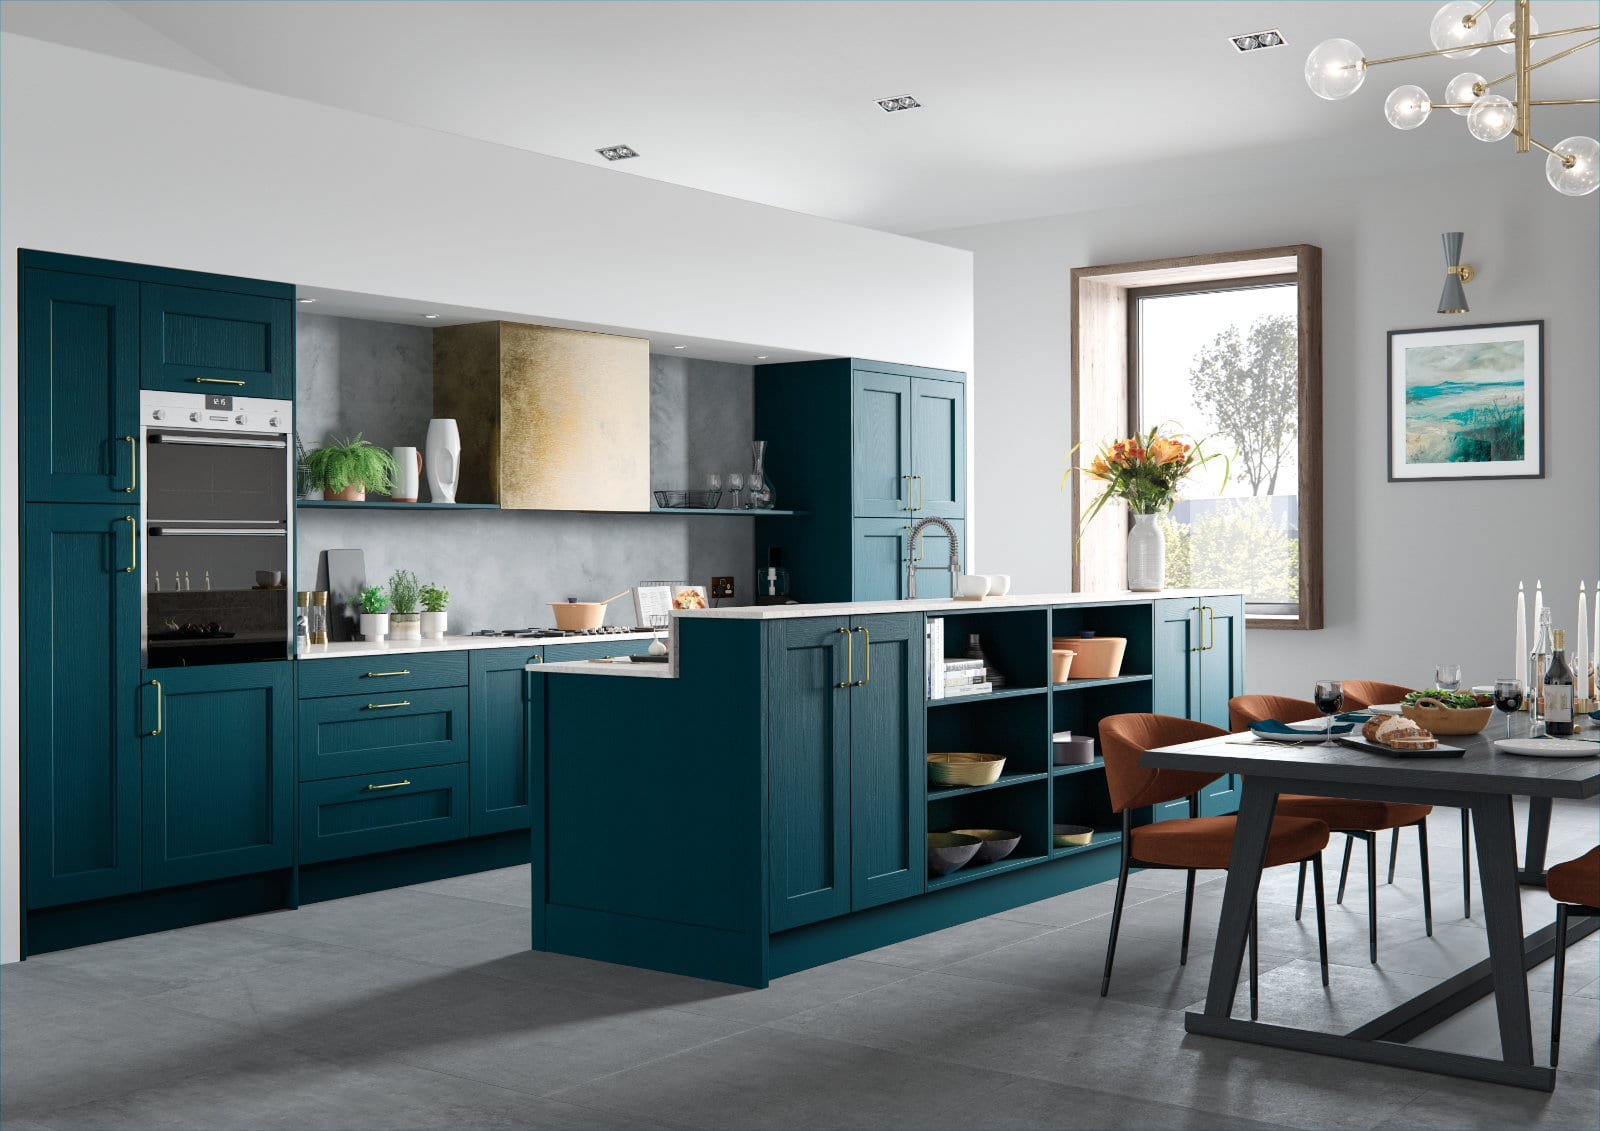 Alku Teal Shaker Open Plan Kitchen With Island   Right Choice Kitchens, South Wales